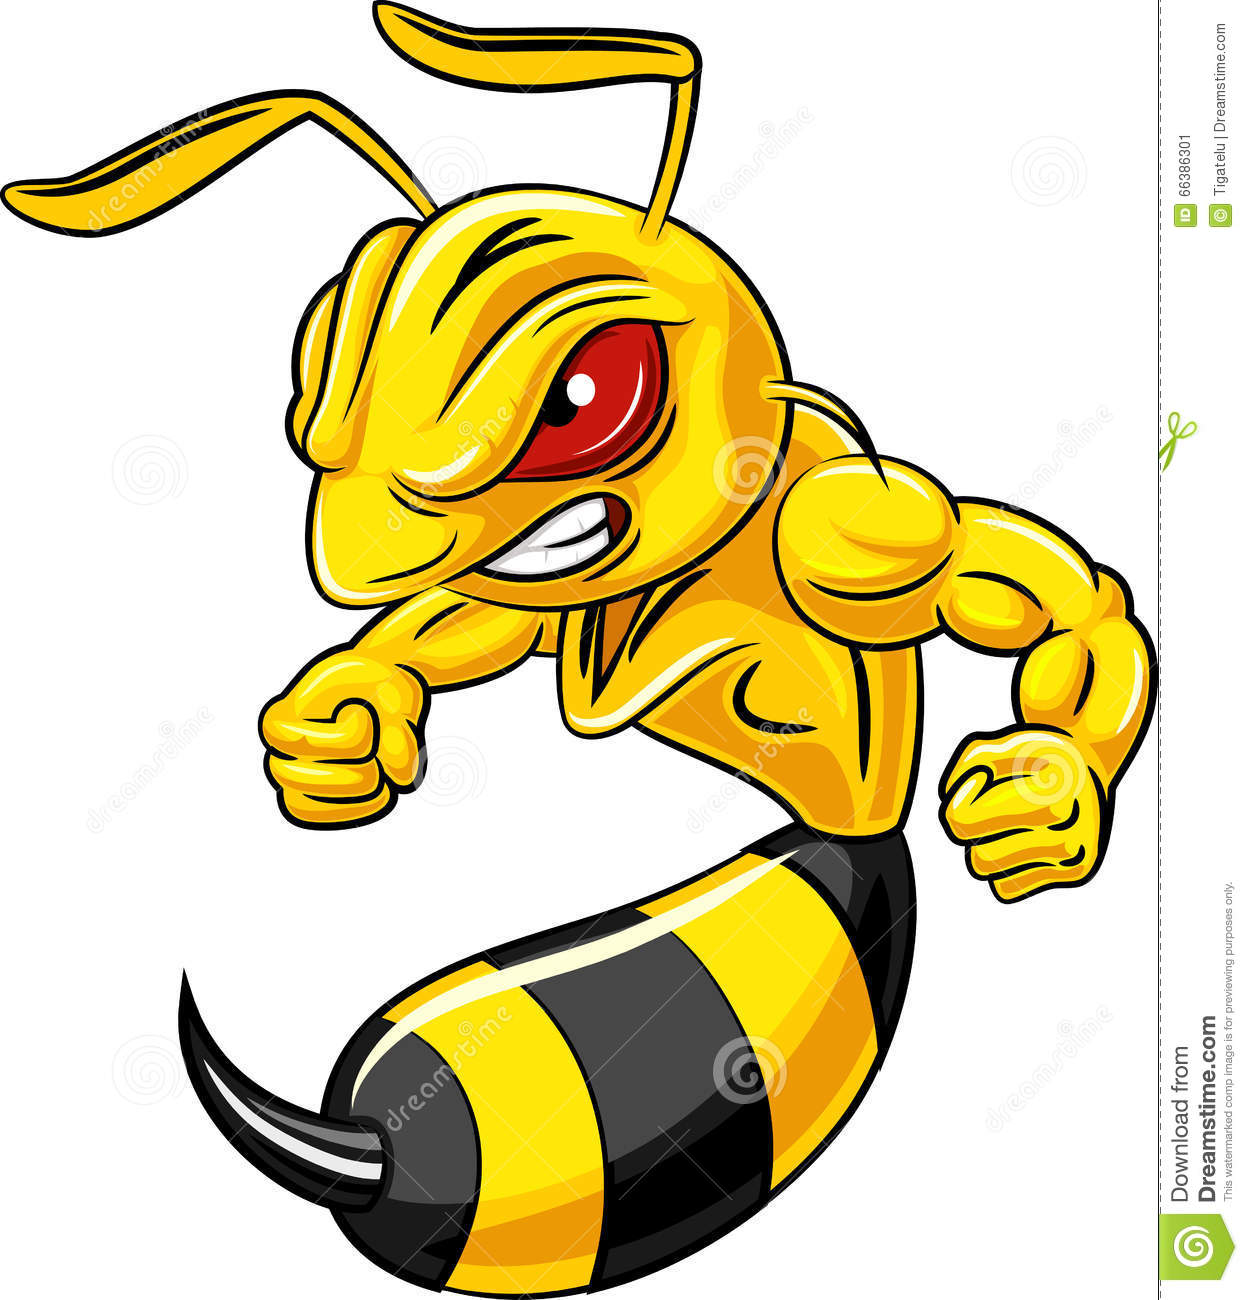 Cartoon Angry Bee Mascot Isolated On White Background Stock Vector Image 66386301